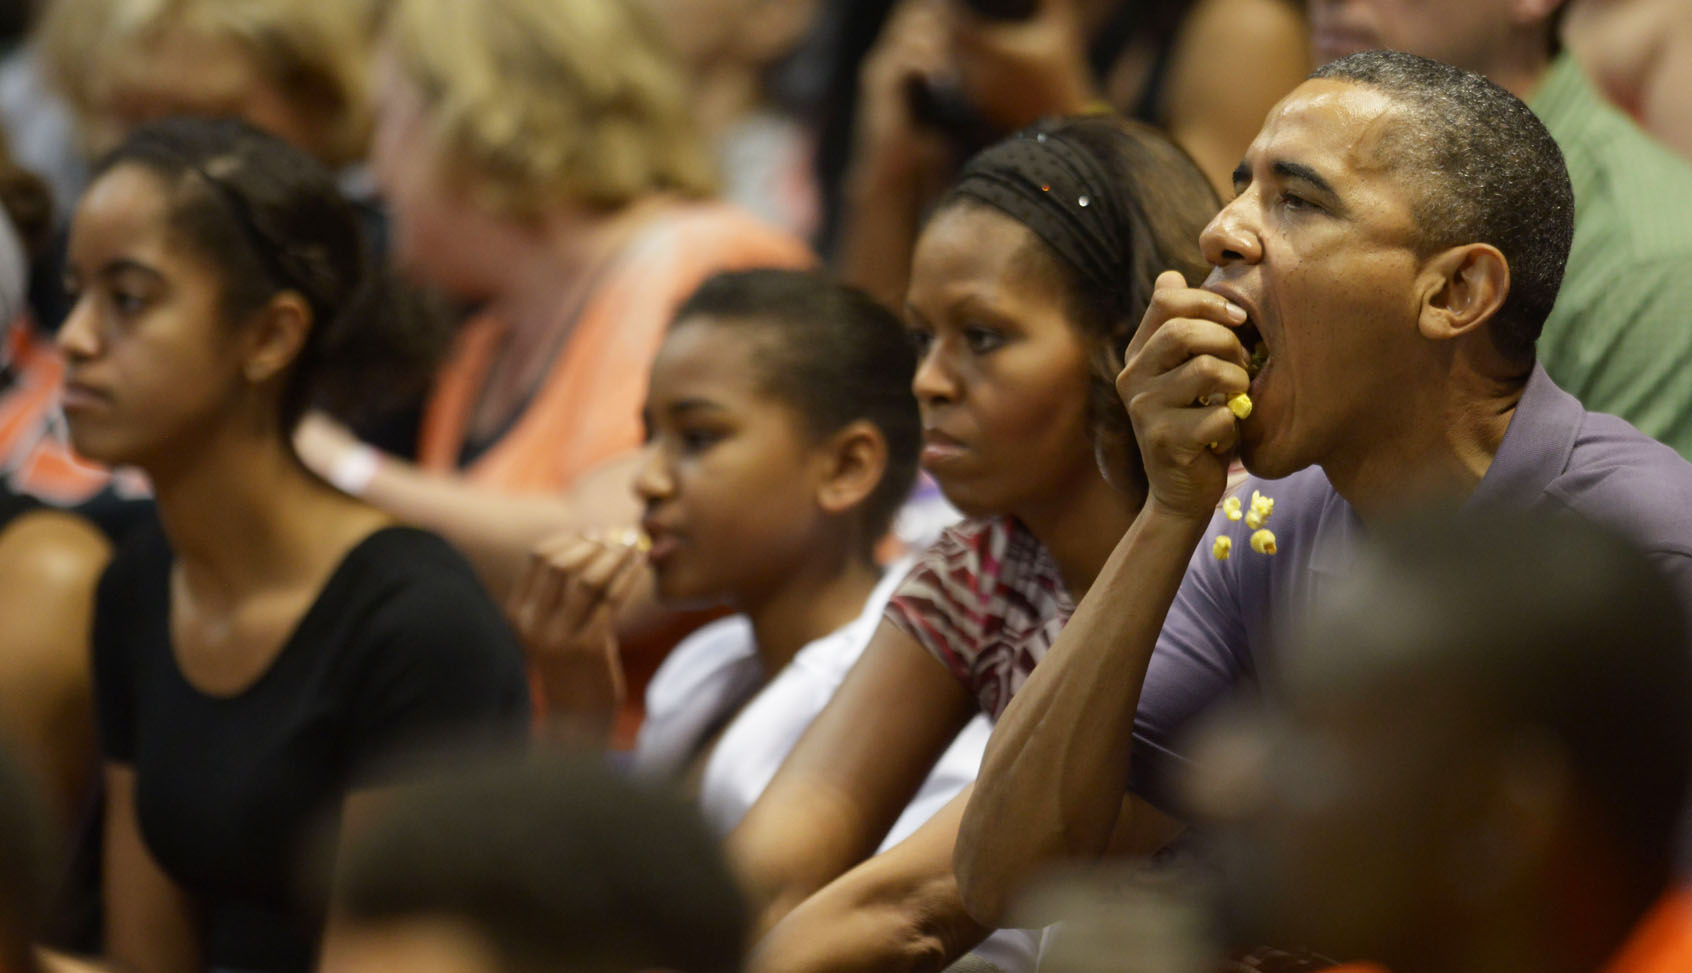 <p>The president loses a few kernels of popcorn as he watches a basketball game in December 2013 at the Stan Sheriff Center with his family, from left, Malia, Sasha and Michelle. They&#8217;re watching the team from Oregon State, then coached by the first lady&#8217;s brother, Craig Robinson.</p>